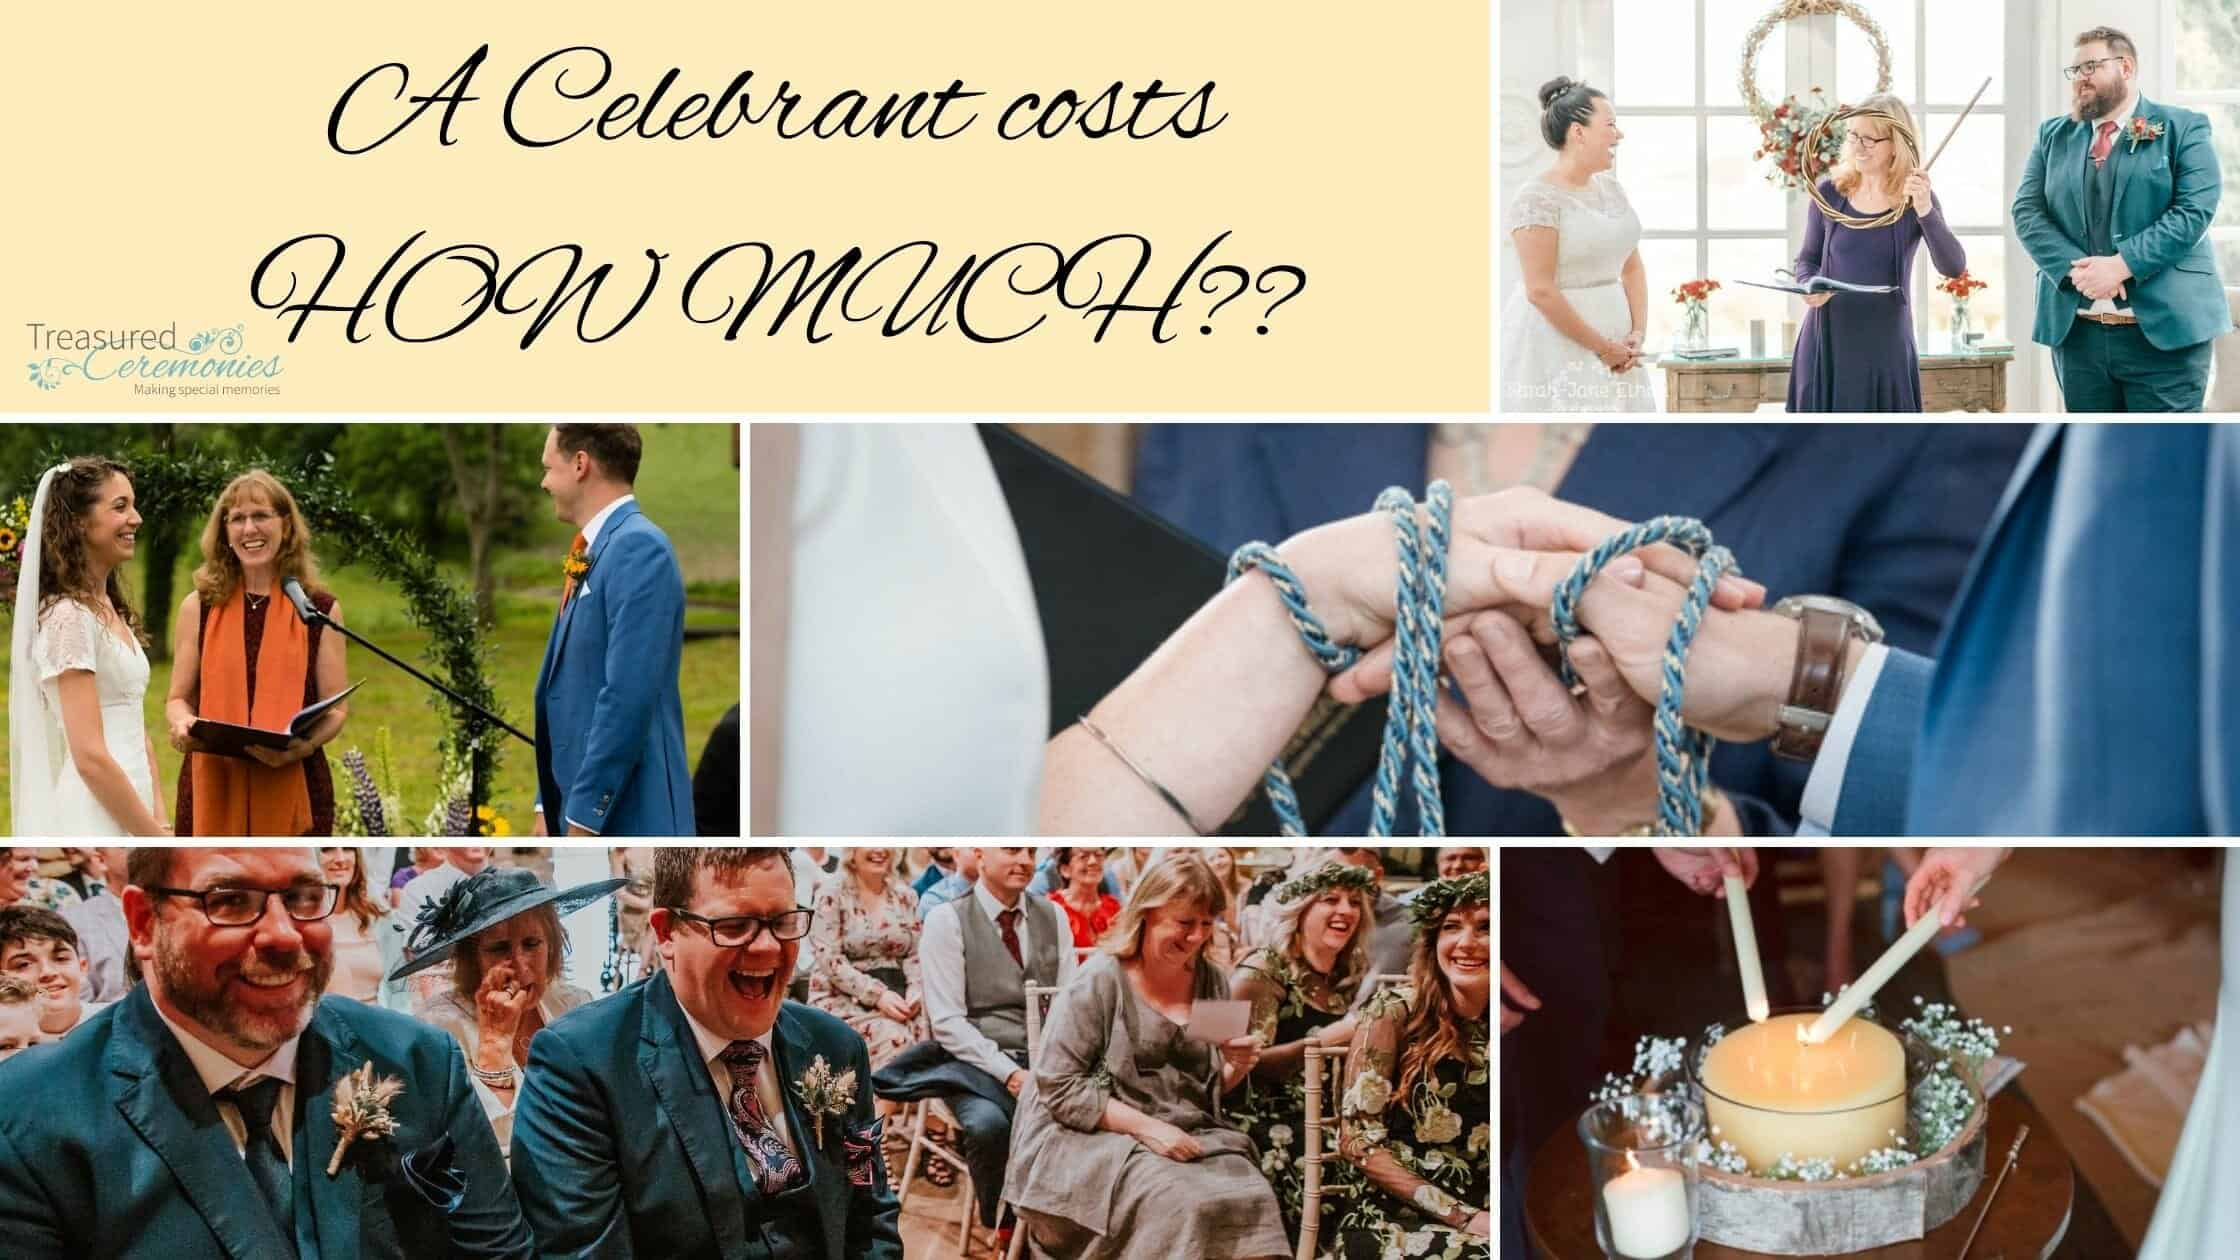 A-celebrant-costs-how-much Jpg